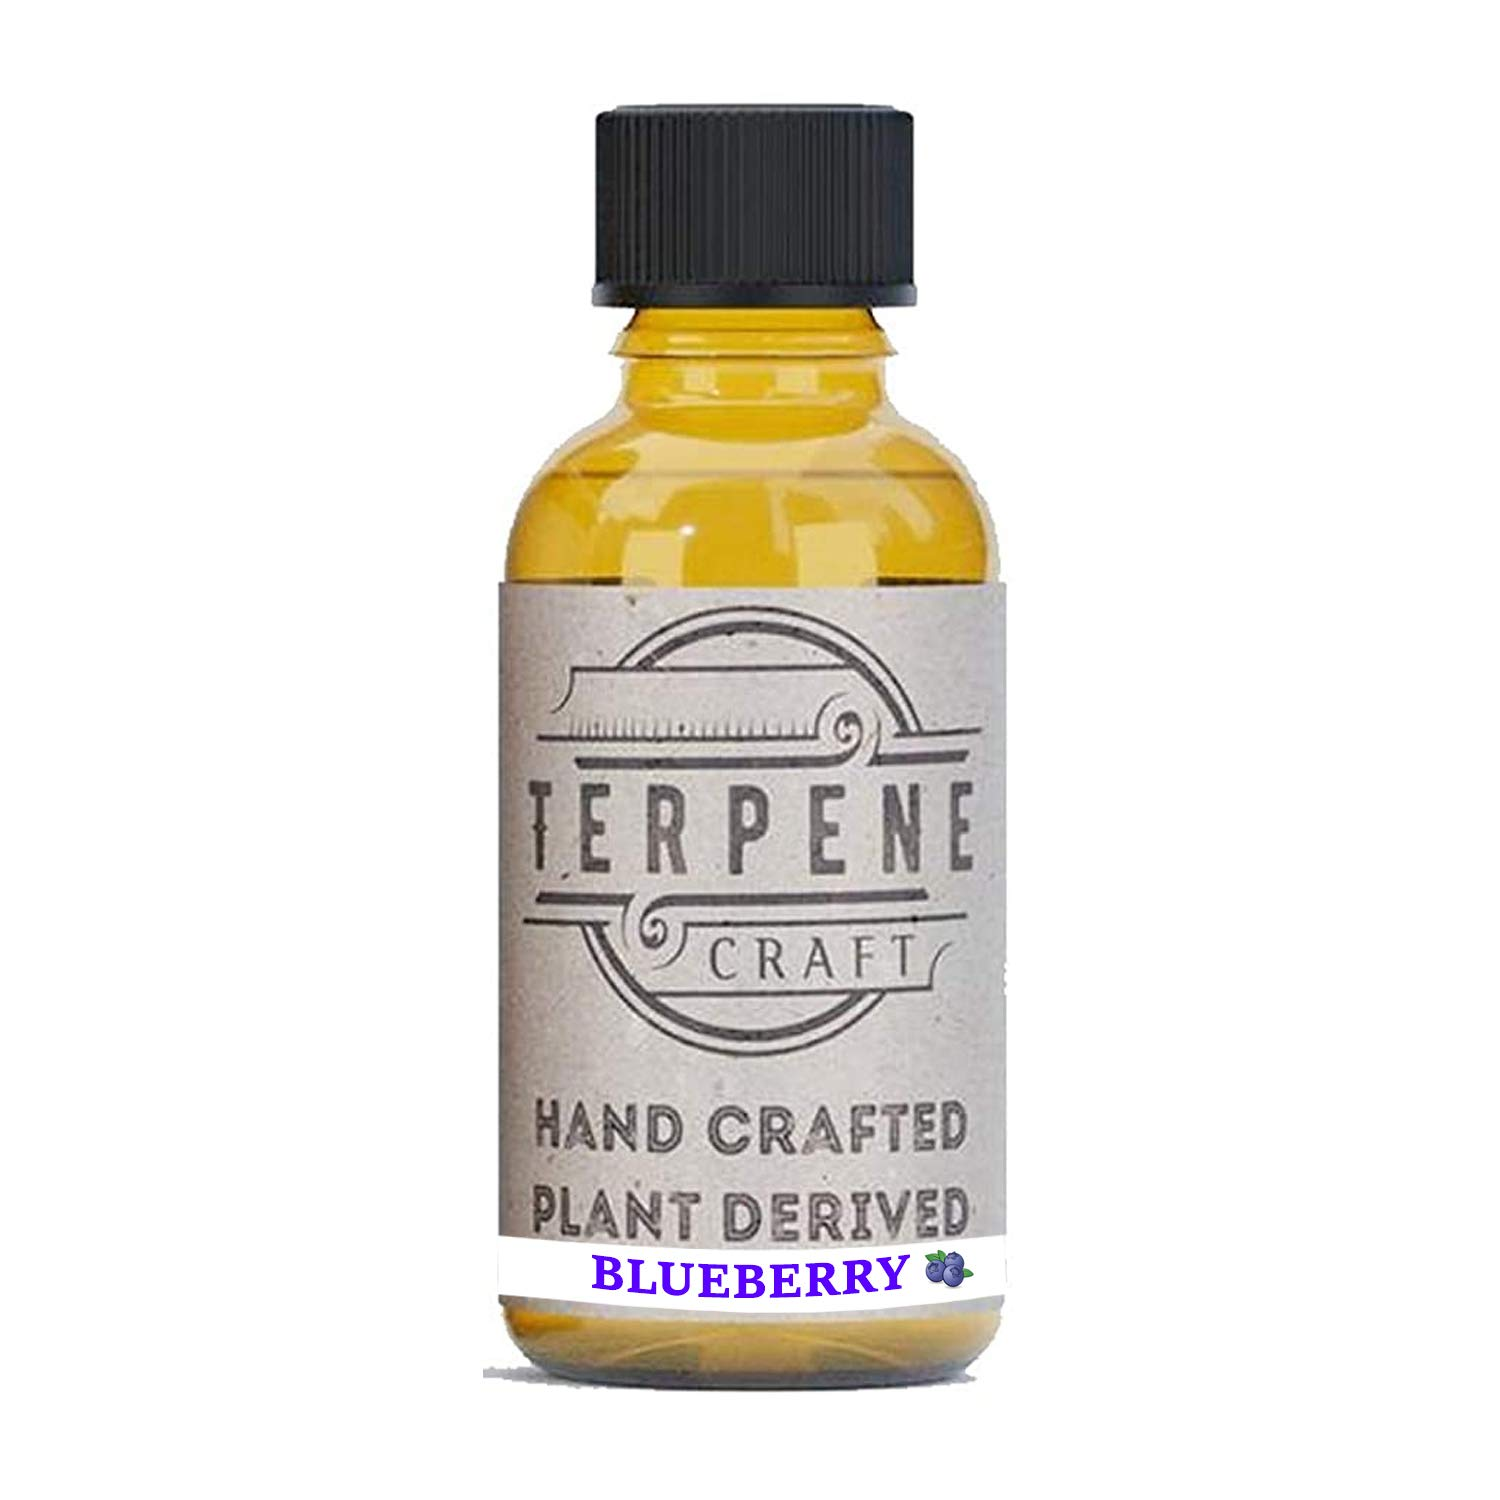 Terpene Craft BLUEBERRY Popular standard Flavor Profile Strain security Extract Specific -